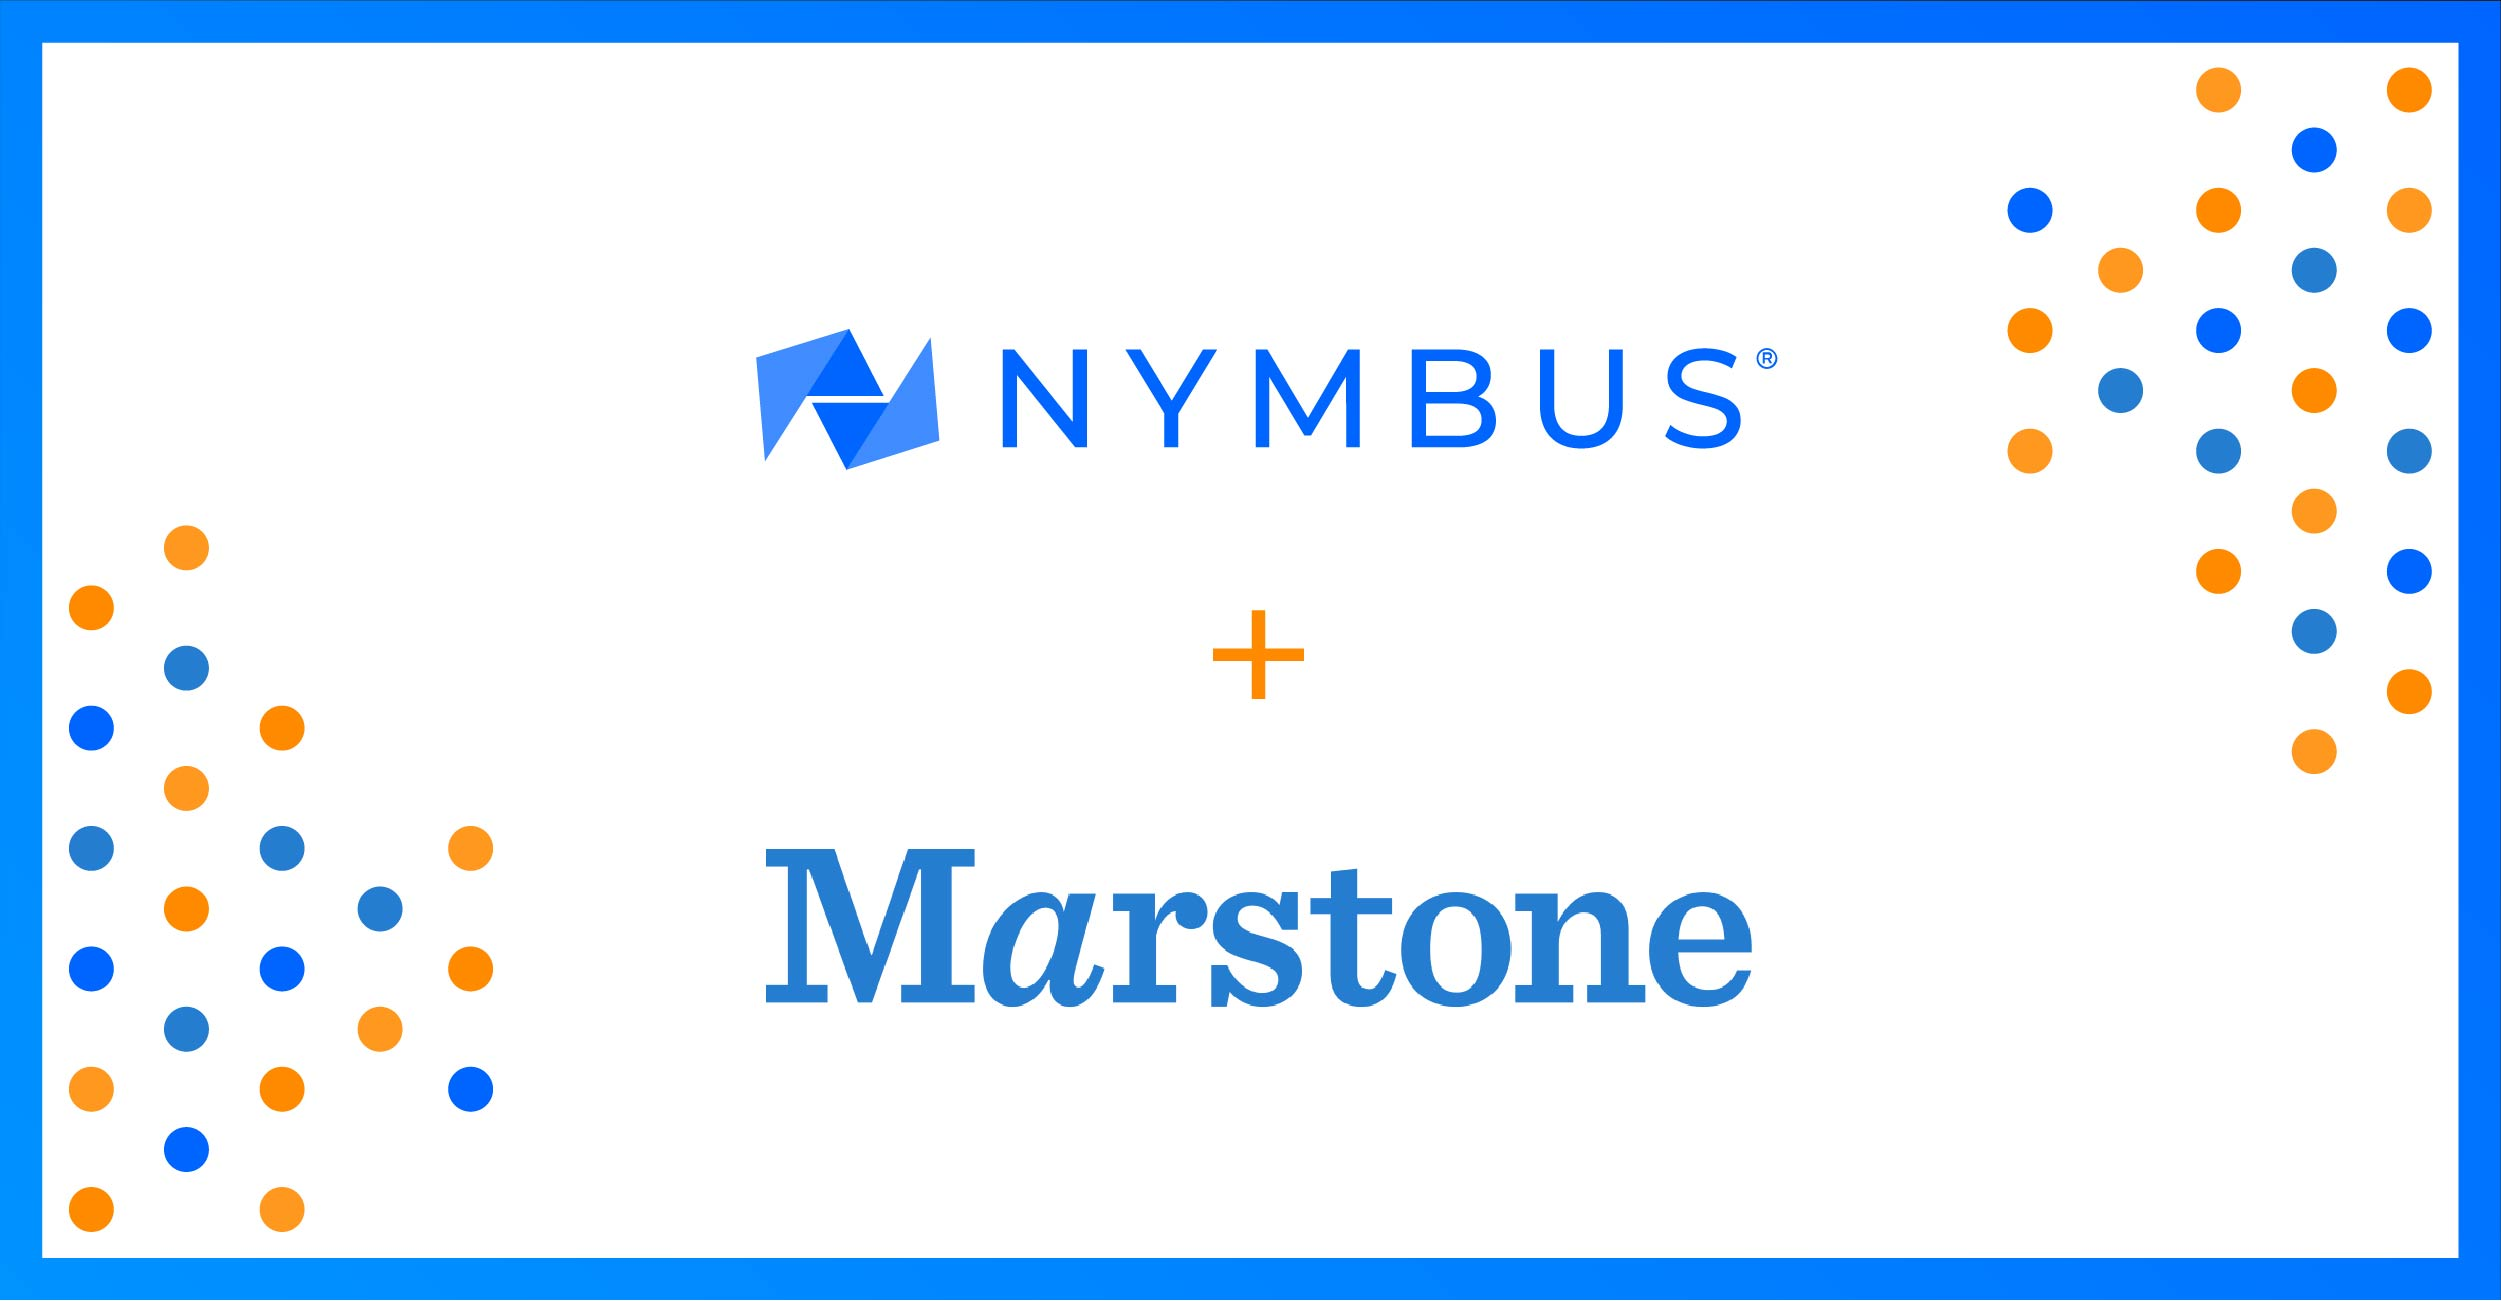 Marstone Continues Digital Wealth Management Platform Expansion Through Partnership with Nymbus